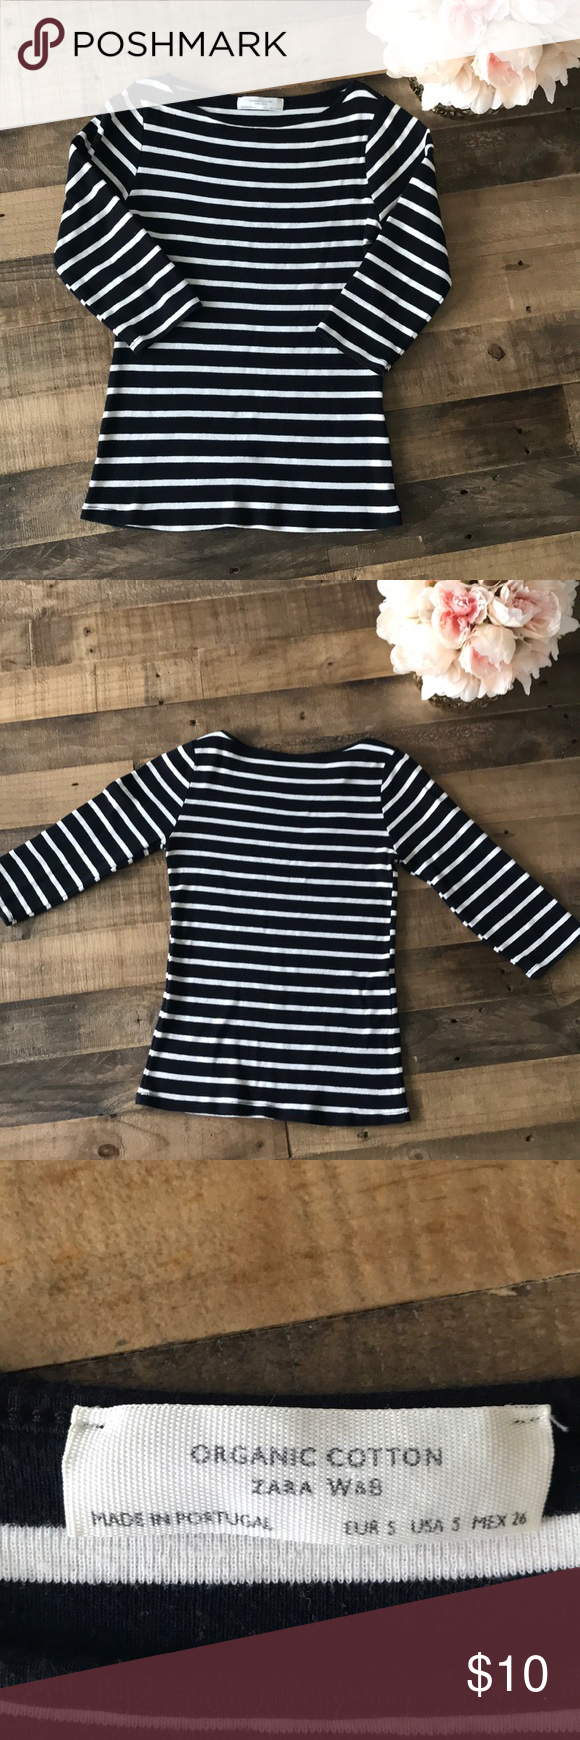 bf023240f0 Zara W&B Organic Cotton Top Size Small • In good condition with normal use  from wear. • Smoke Free Home • Has piling. • 3/4 Sleeves Zara Tops